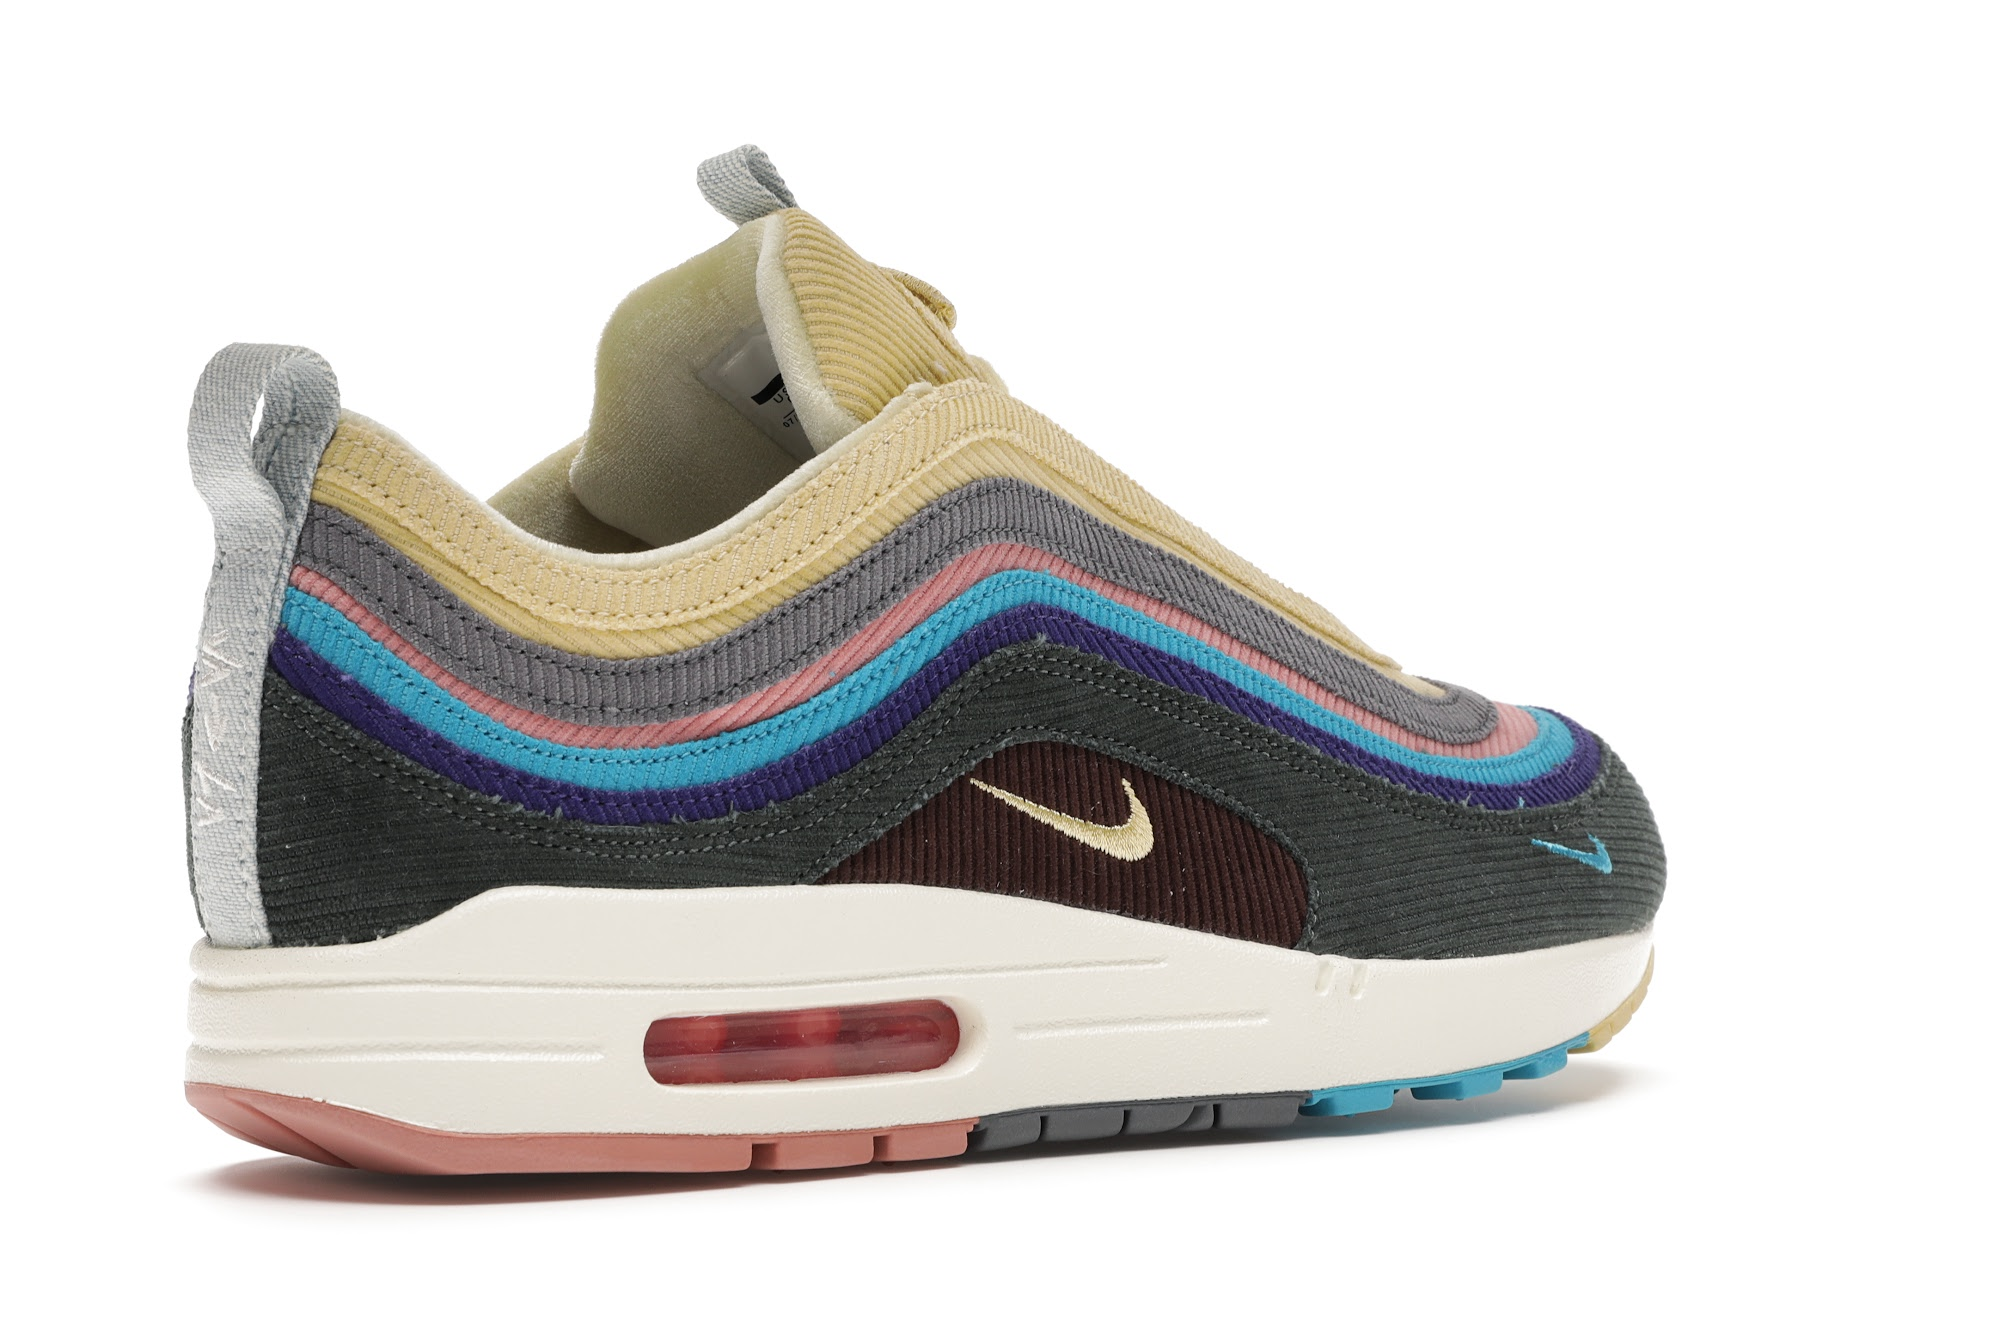 Nike Air Max 1/97 Sean Wotherspoon (All Accessories and Dustbag ...